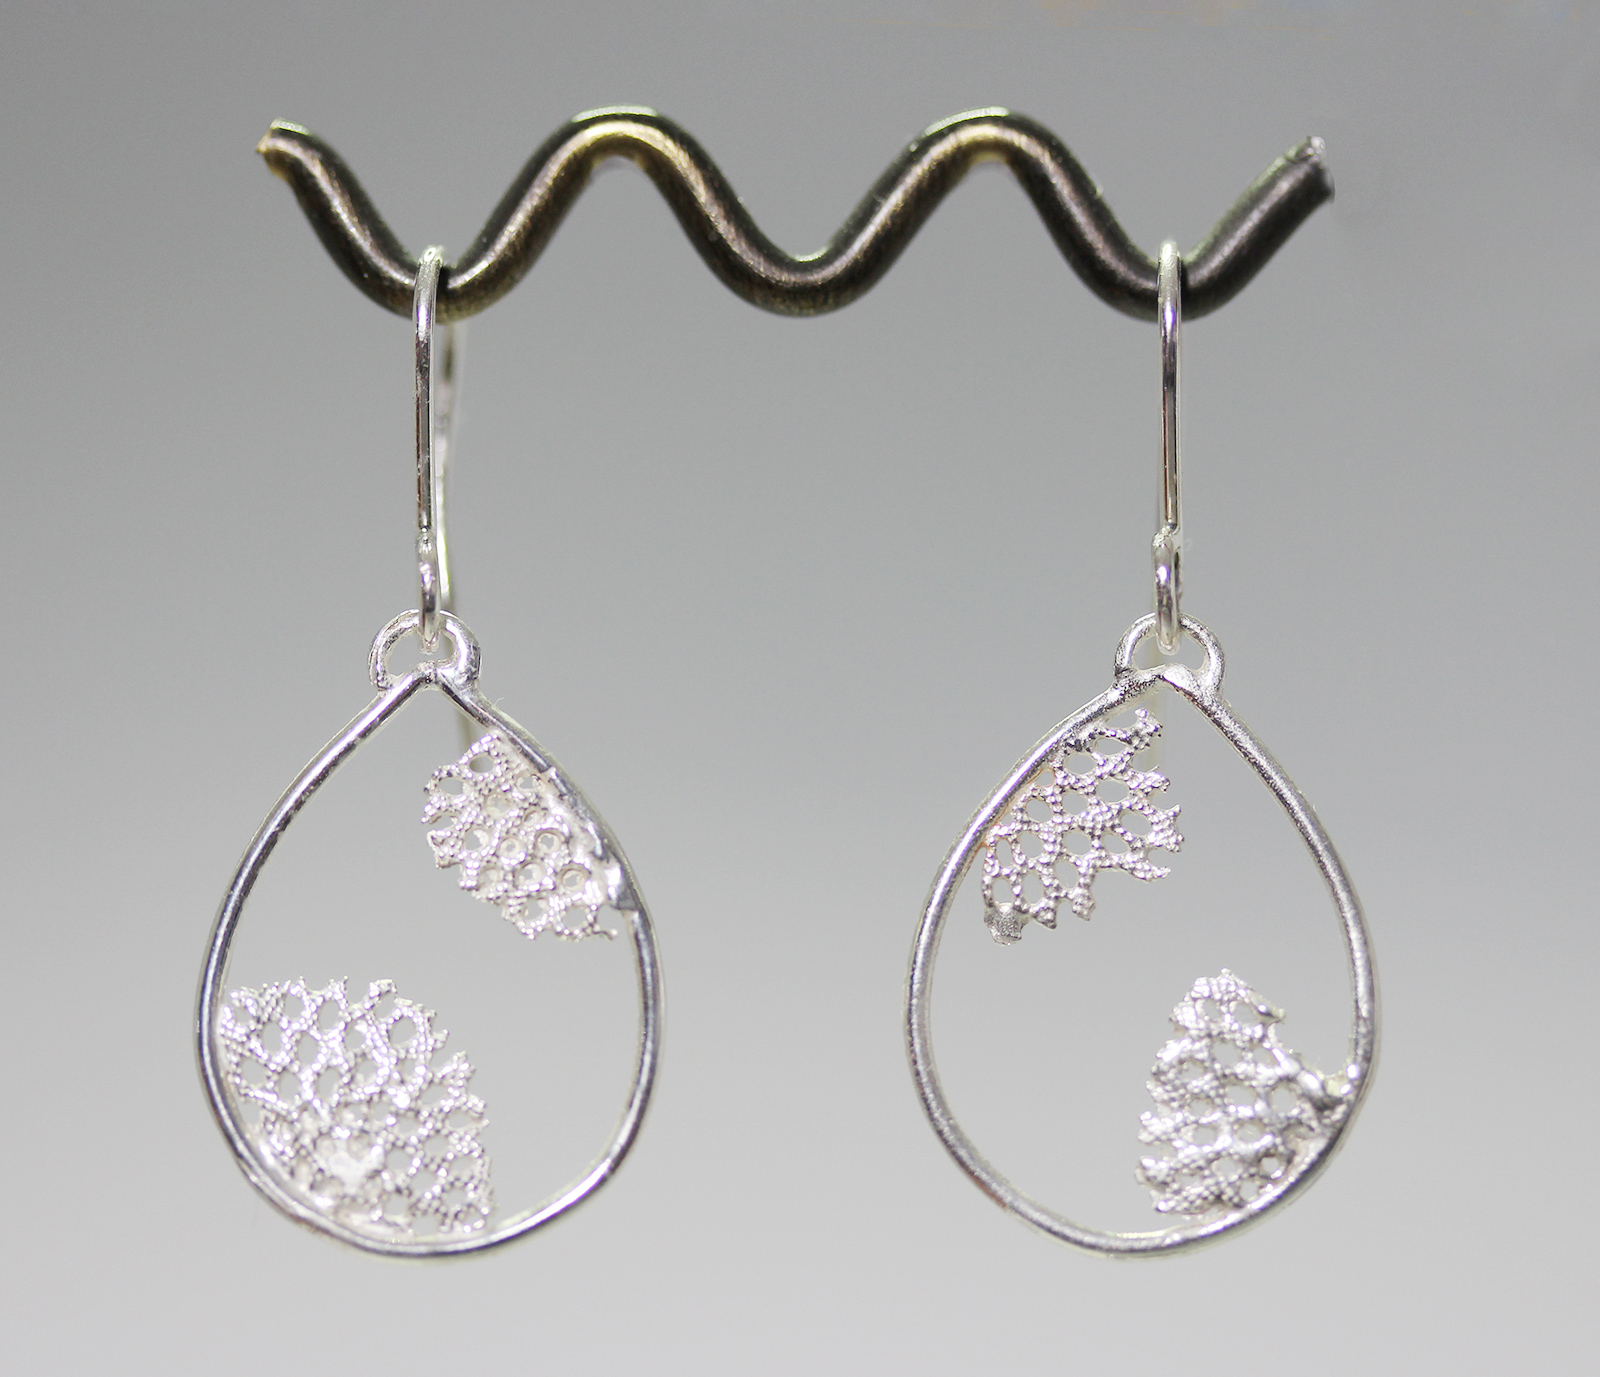 Lace coral teardrop earrings